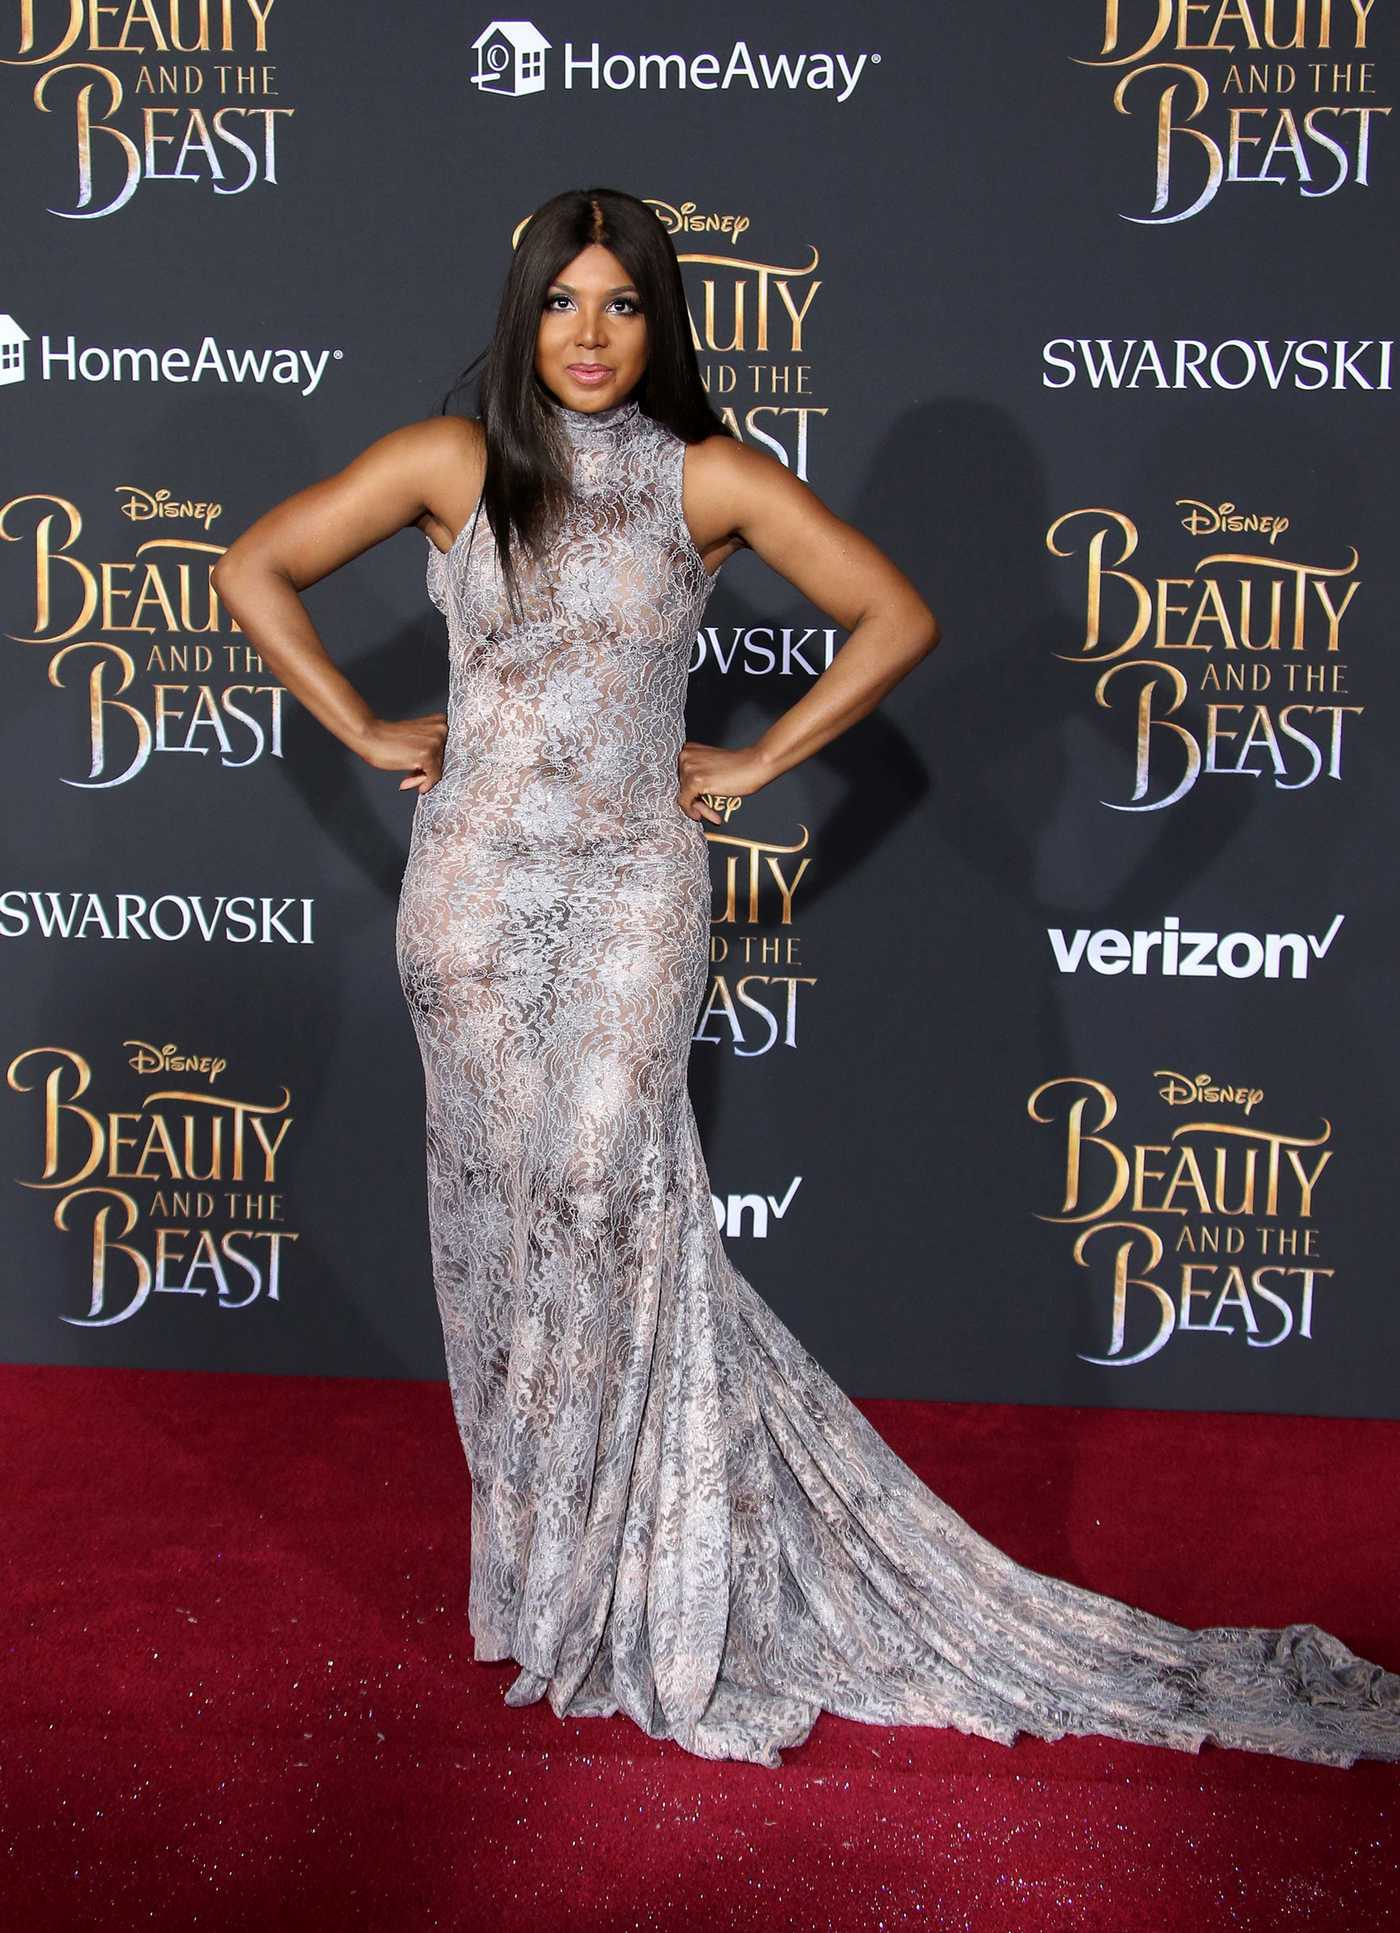 Toni Braxton at the Beauty and the Beast Premiere Los Angeles 03/02/2017